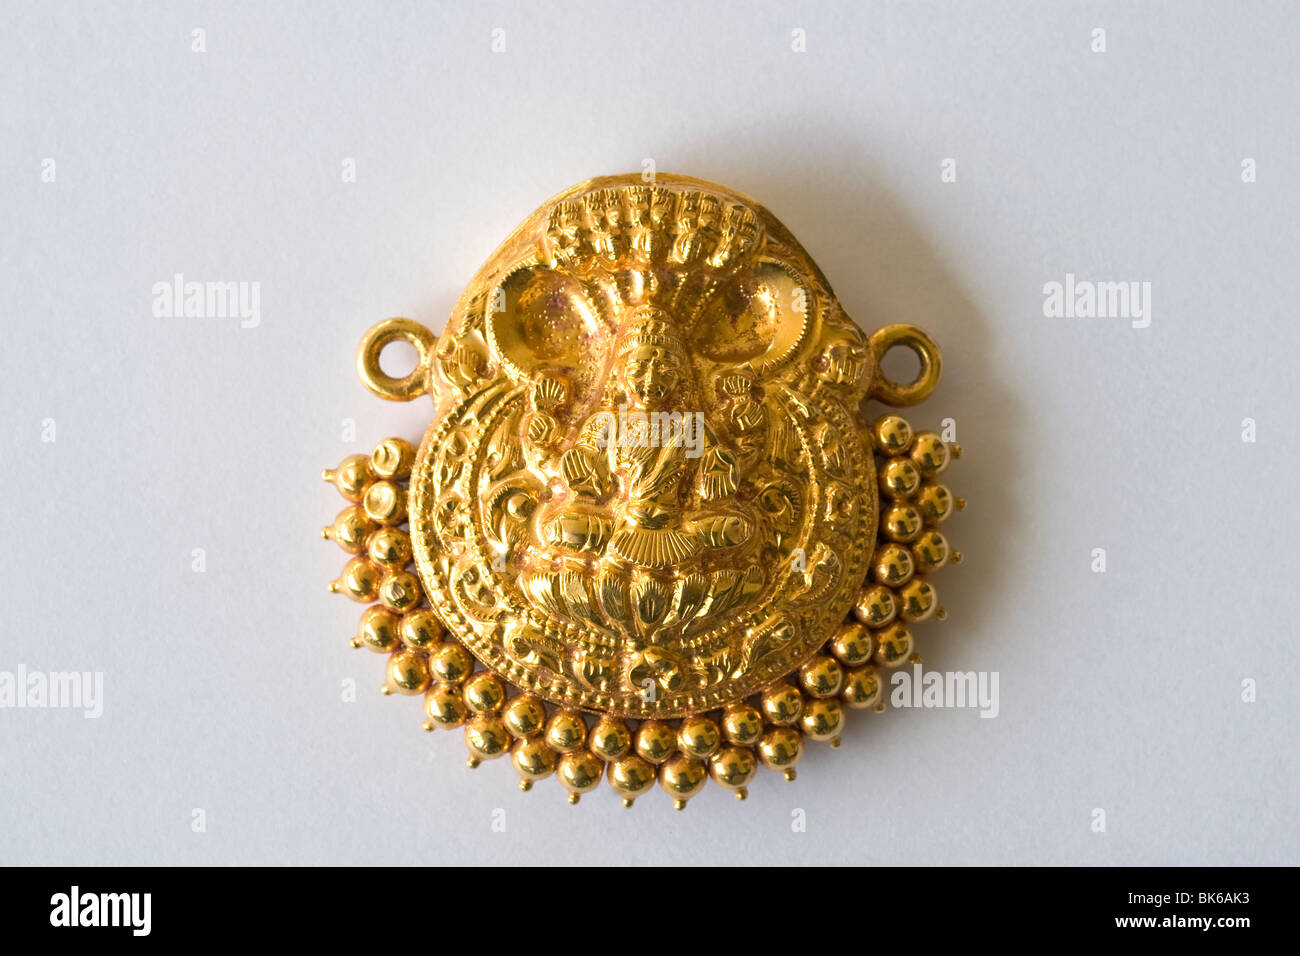 60 years old gold ornamental lakshmi pendant stock photo royalty 60 years old gold ornamental lakshmi pendant mozeypictures Gallery